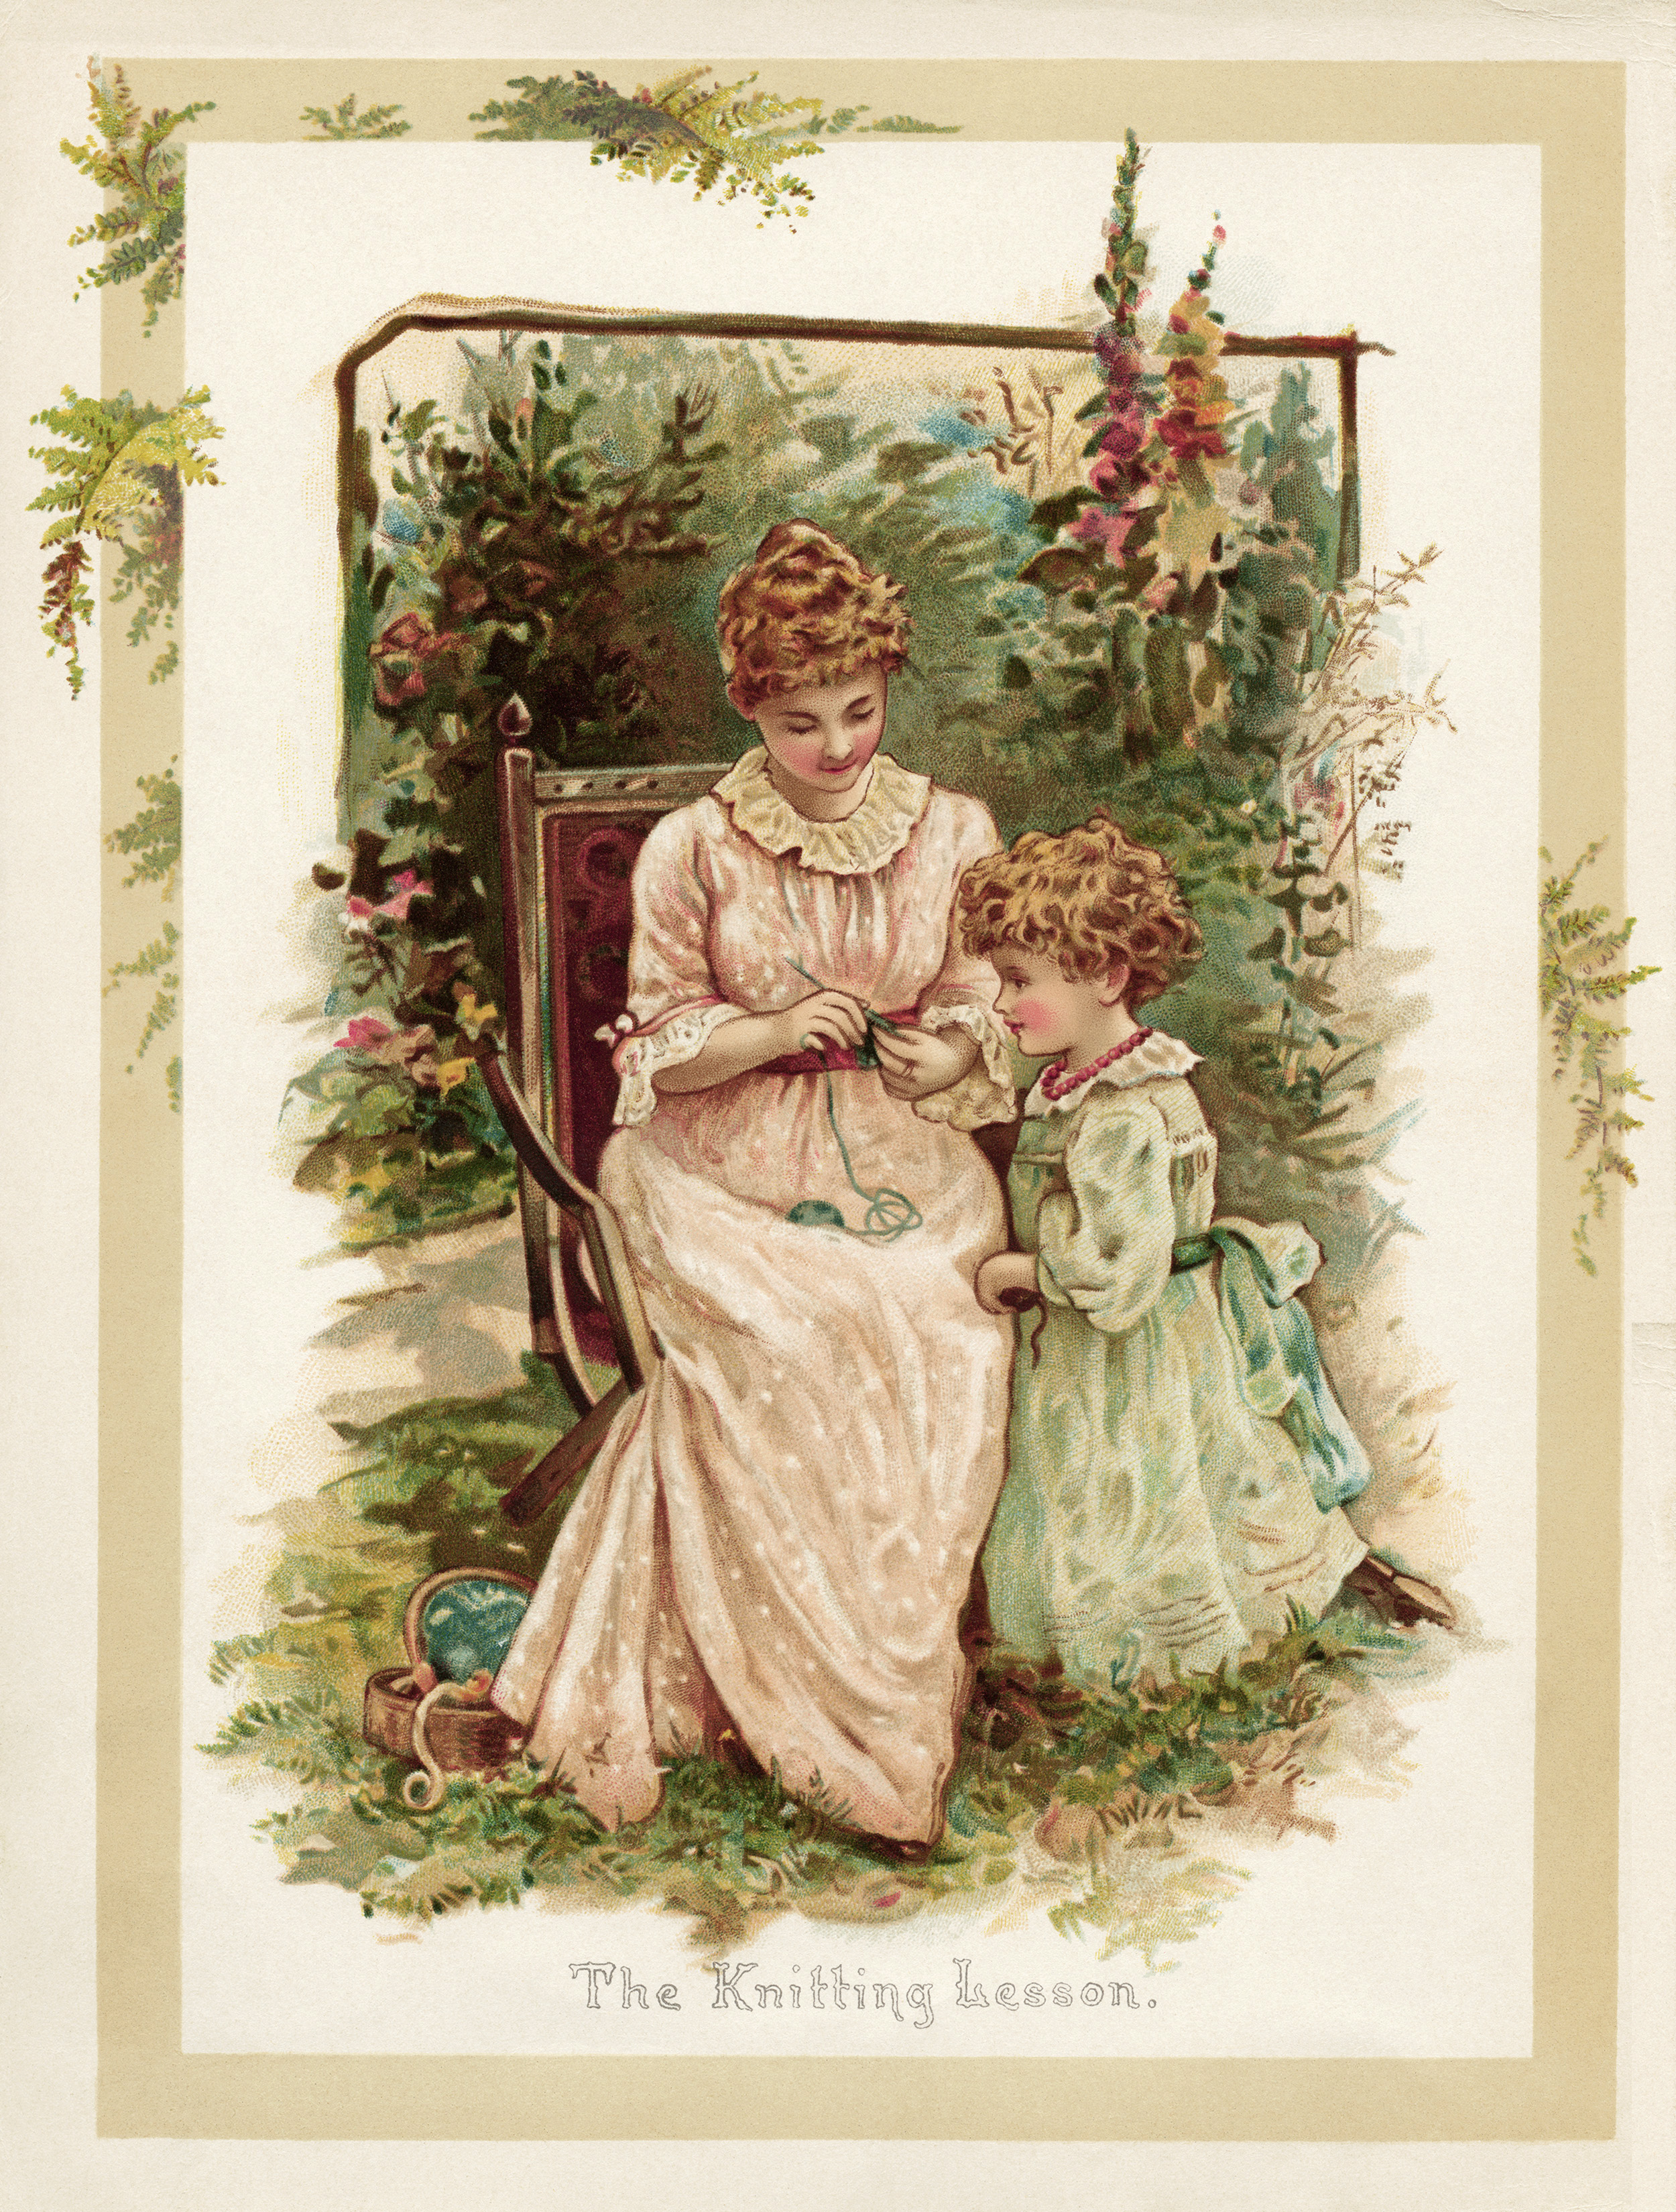 vintage storybook illustration, the knitting lesson, Victorian mother and child, knitting outdoors image, sunbeams and me, vintage mom and daughter printable